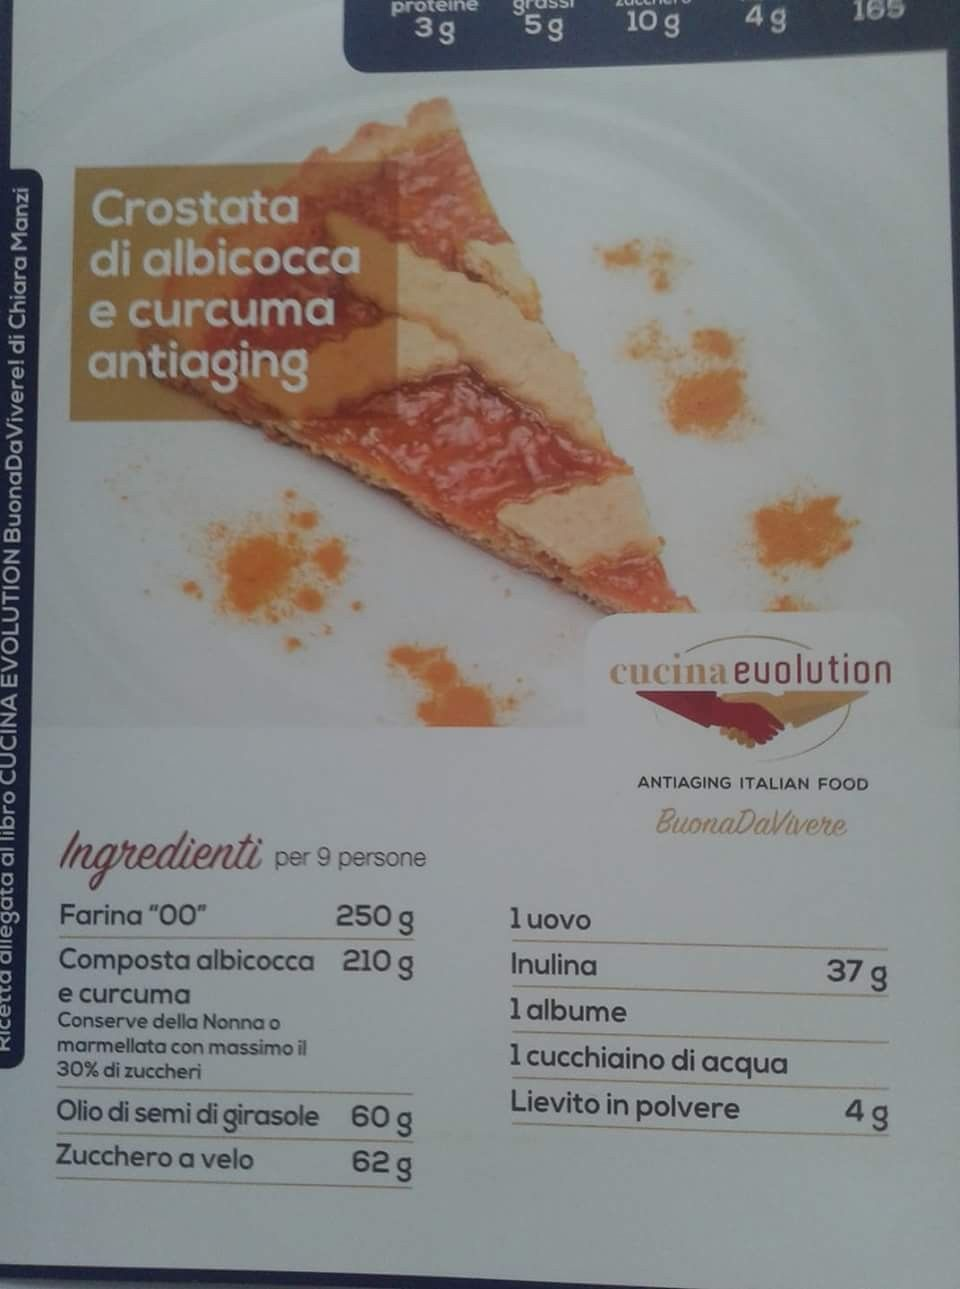 Cucina Evolution Manzi Crostata Evolution Ricette Food Bread E Cucina